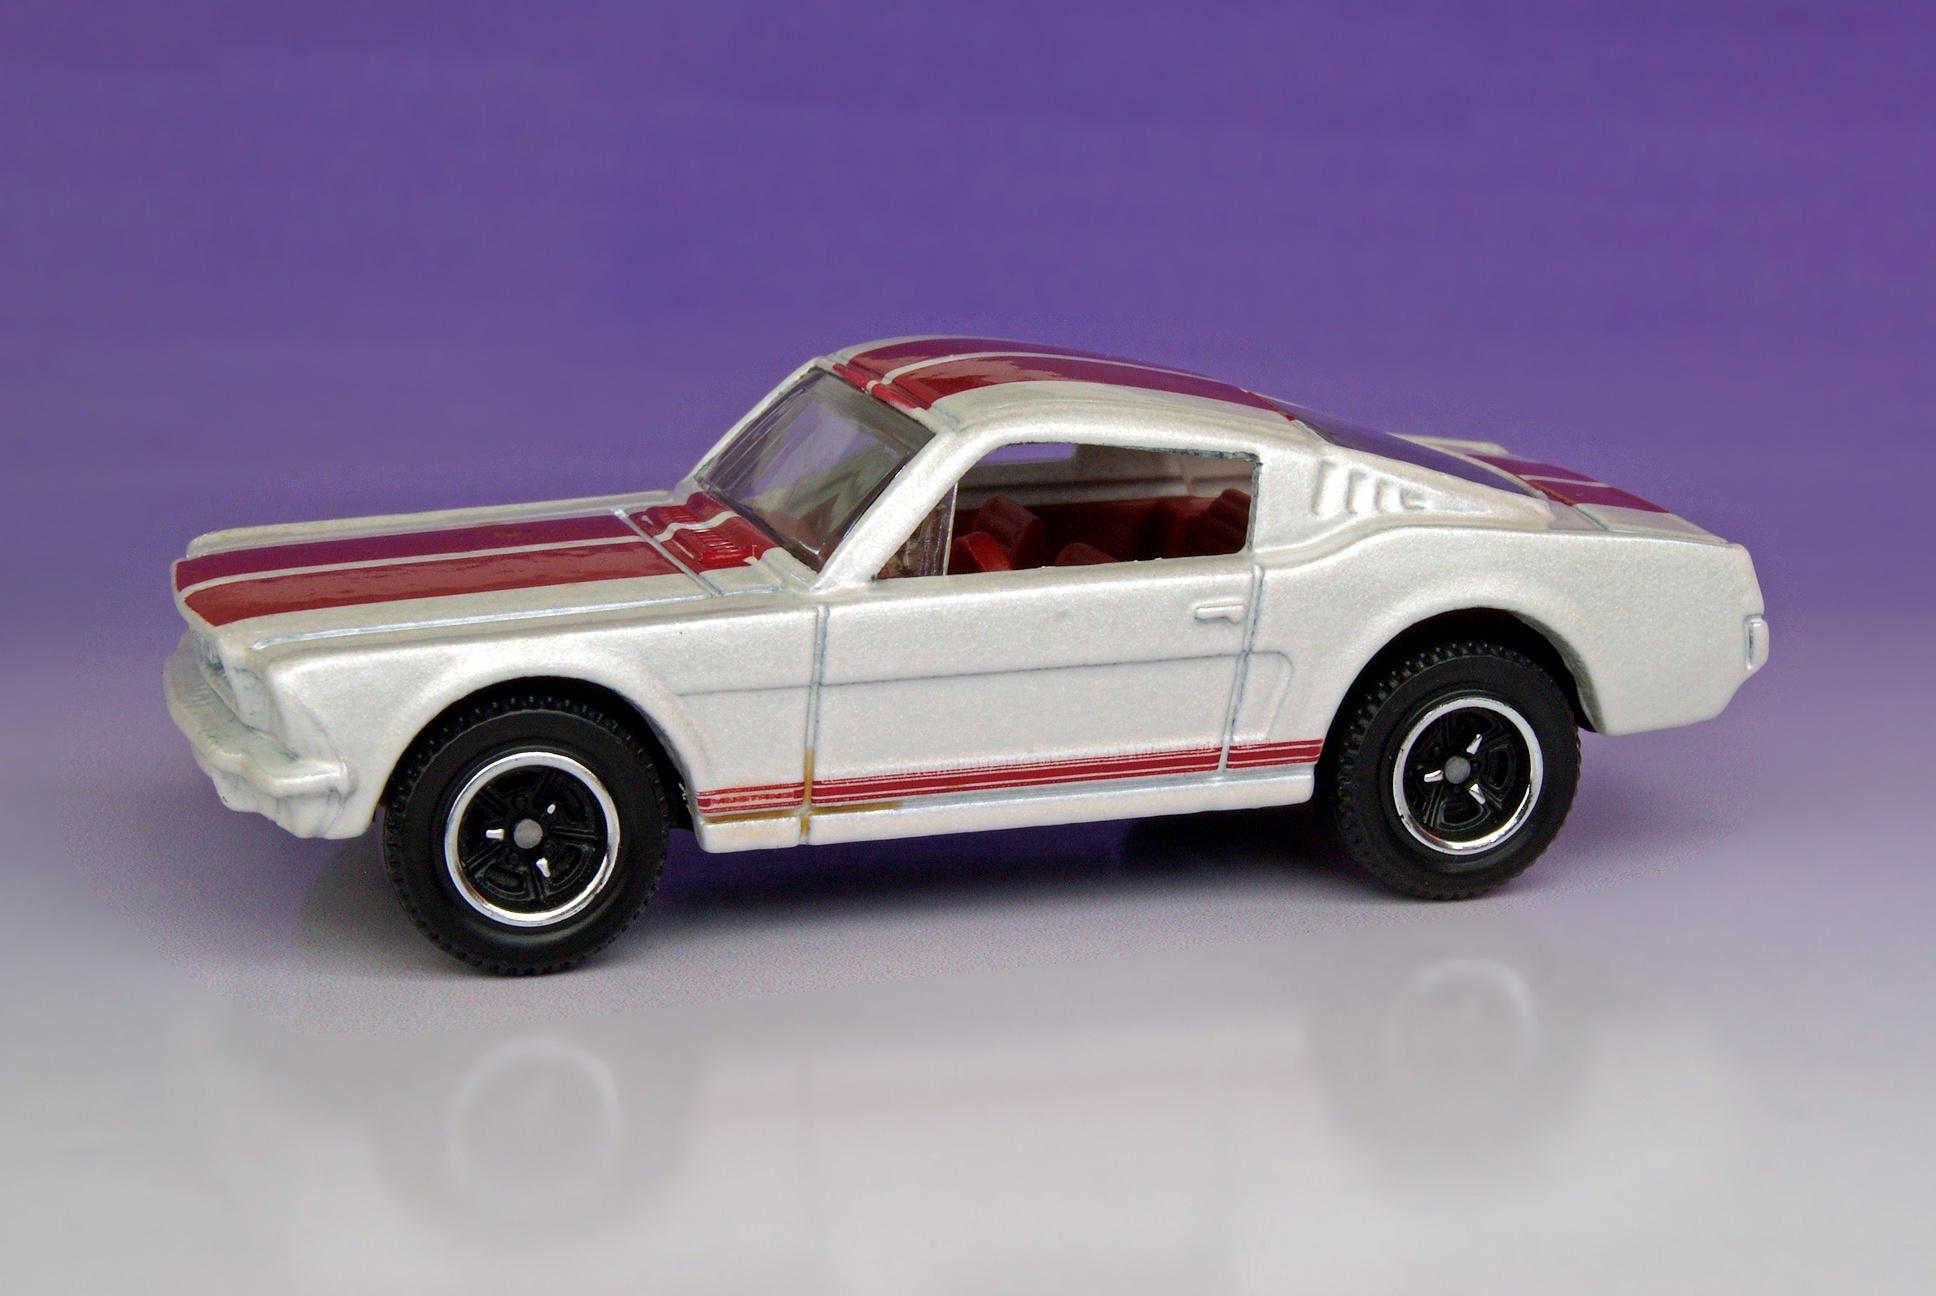 65 Mustang GT | Matchbox Cars Wiki | FANDOM powered by Wikia